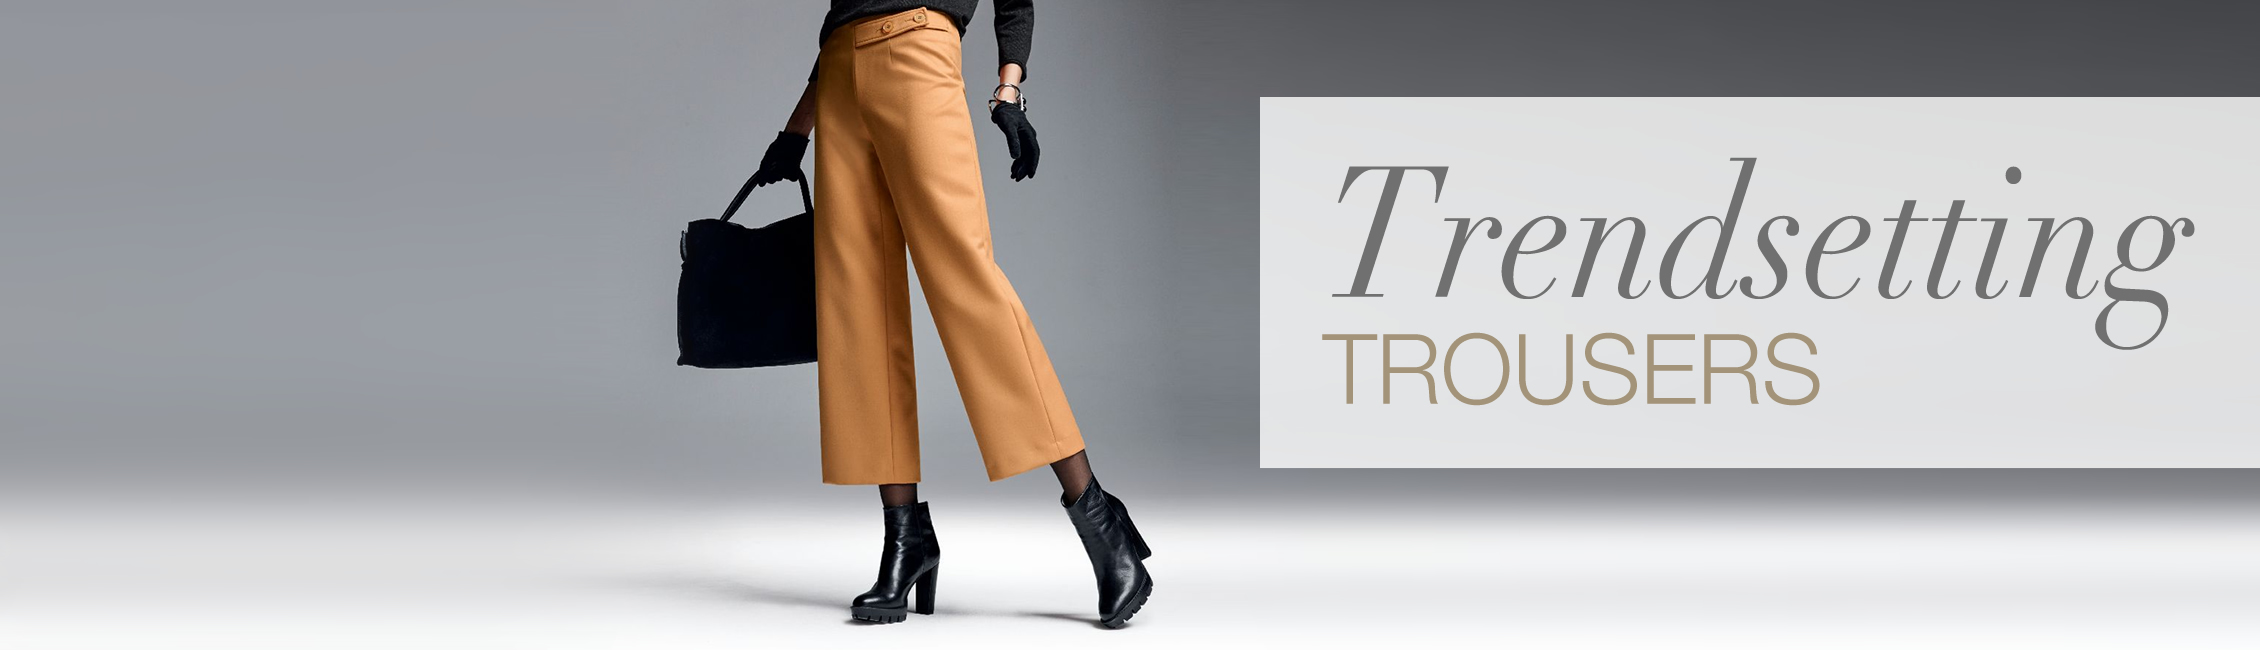 Trendsetting trousers